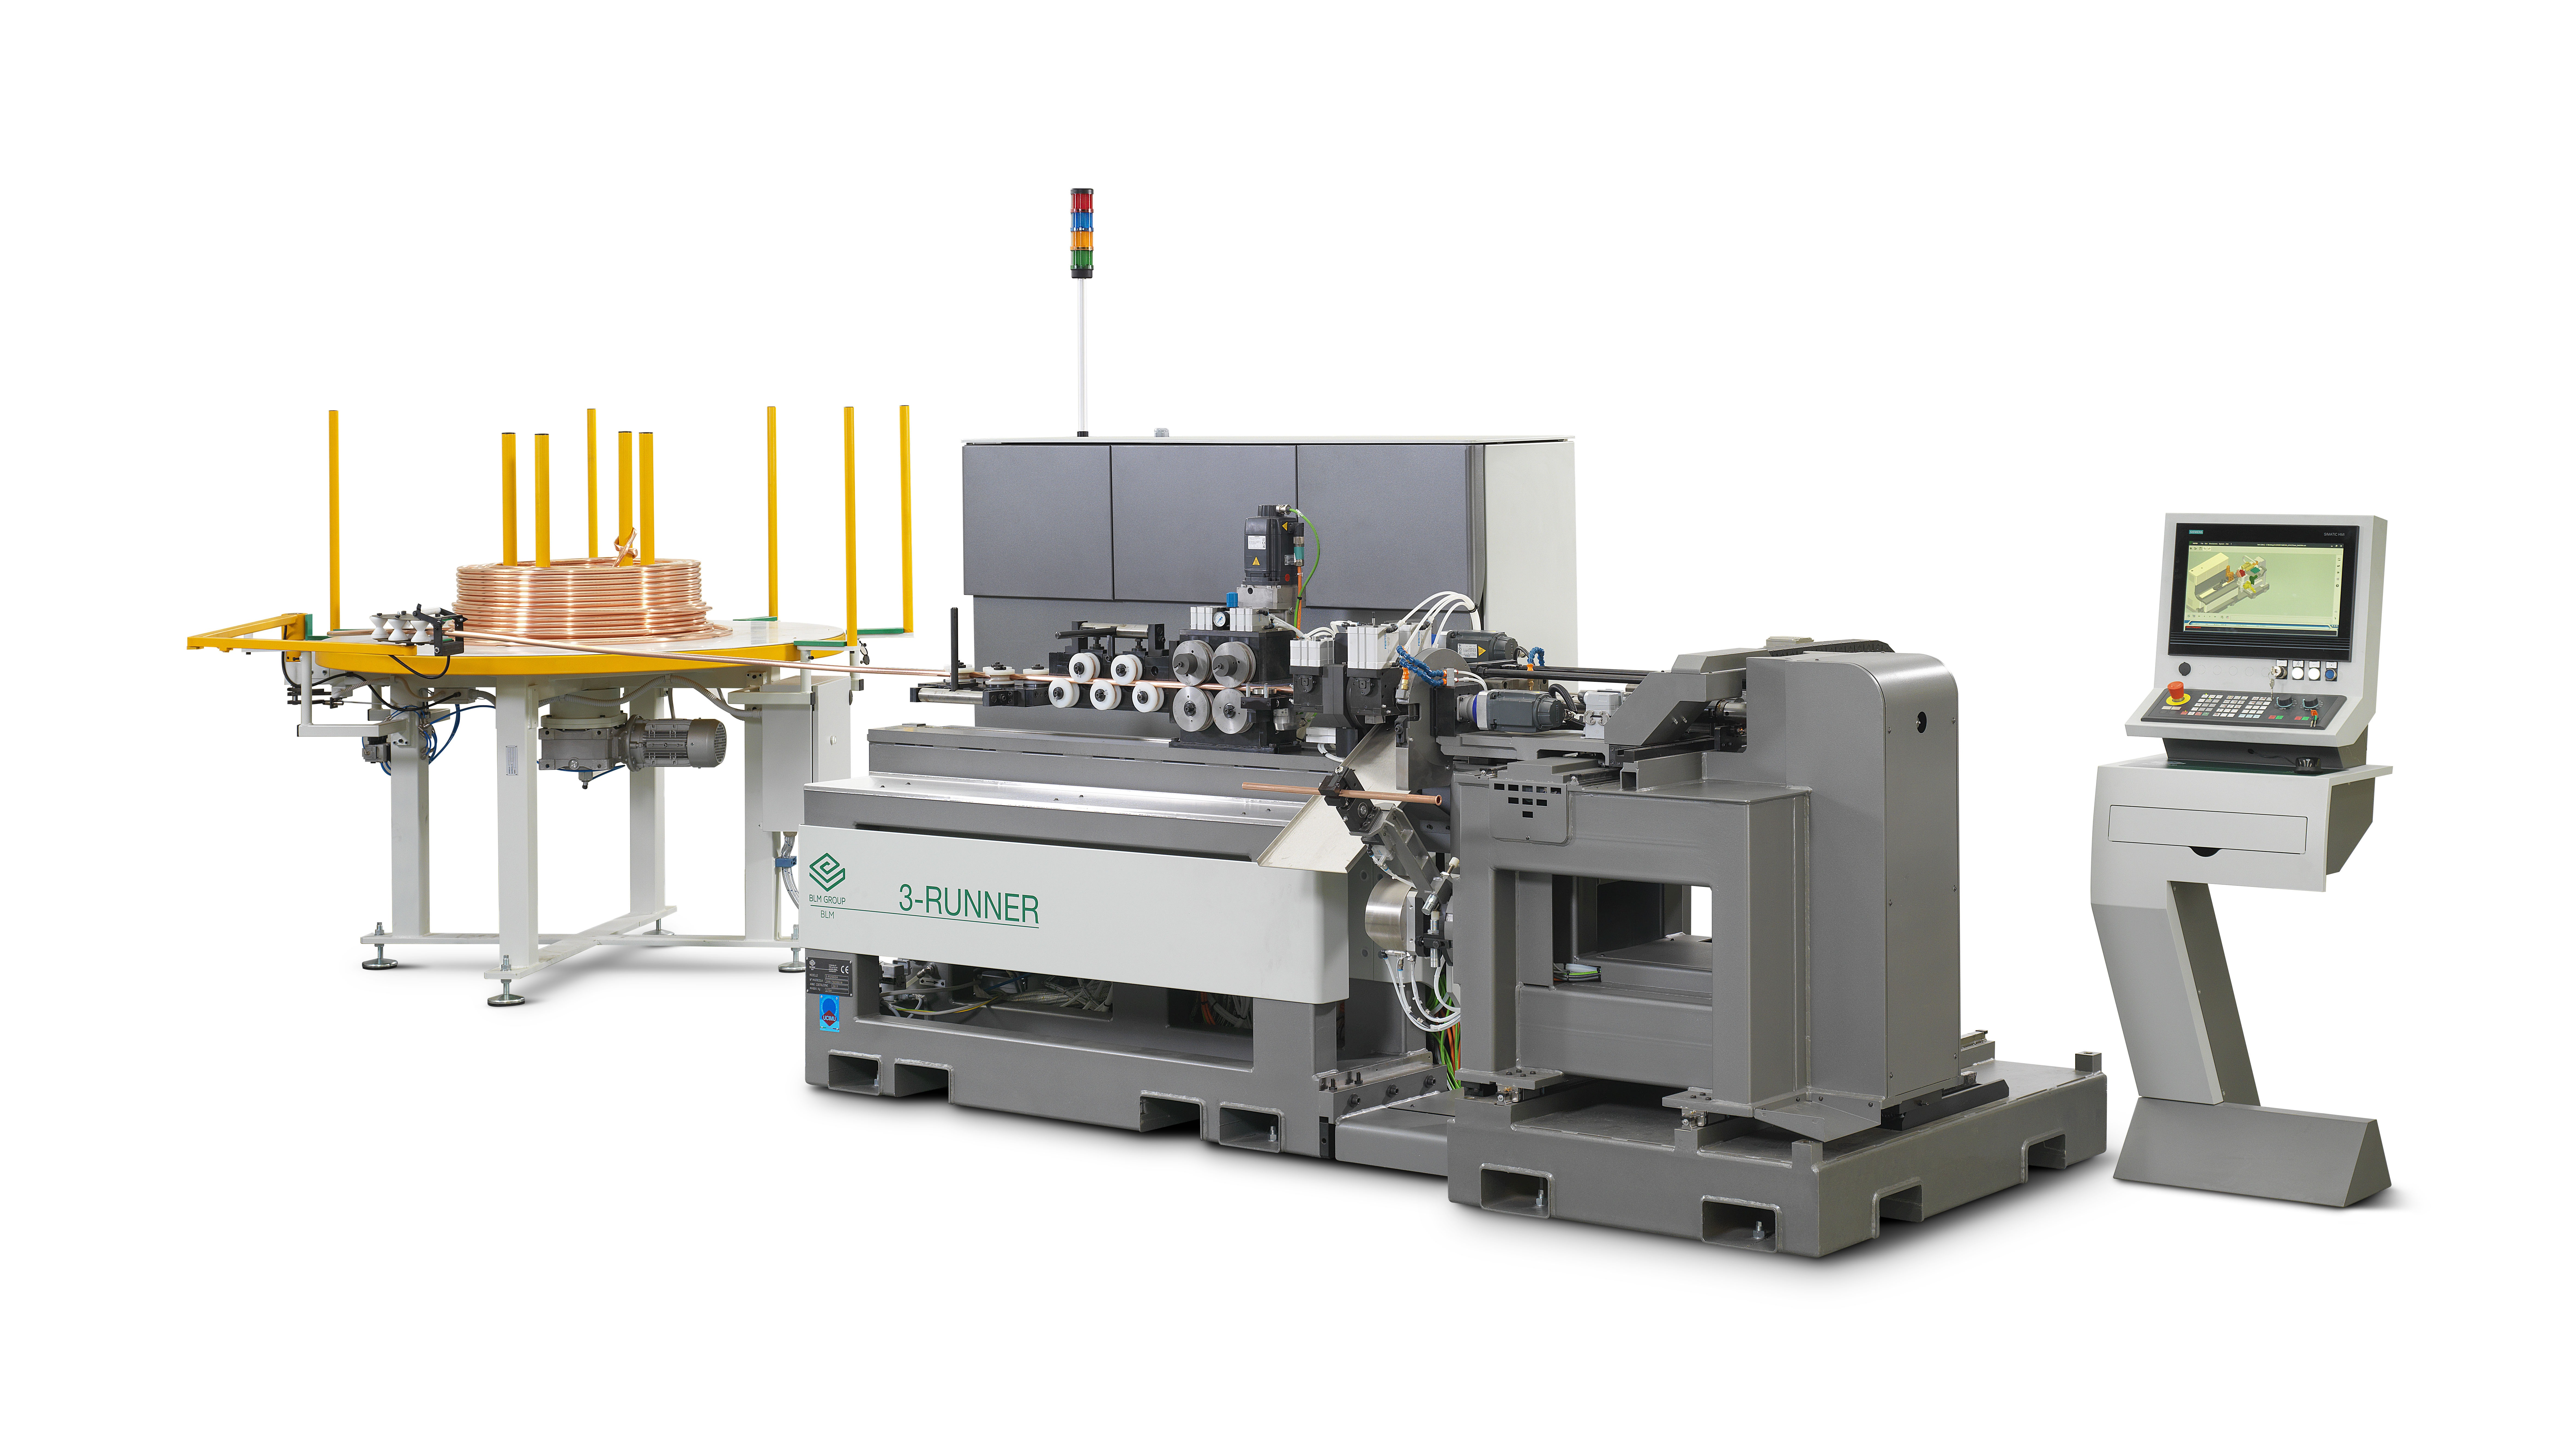 3-RUNNER ENDFORMING MACHINE